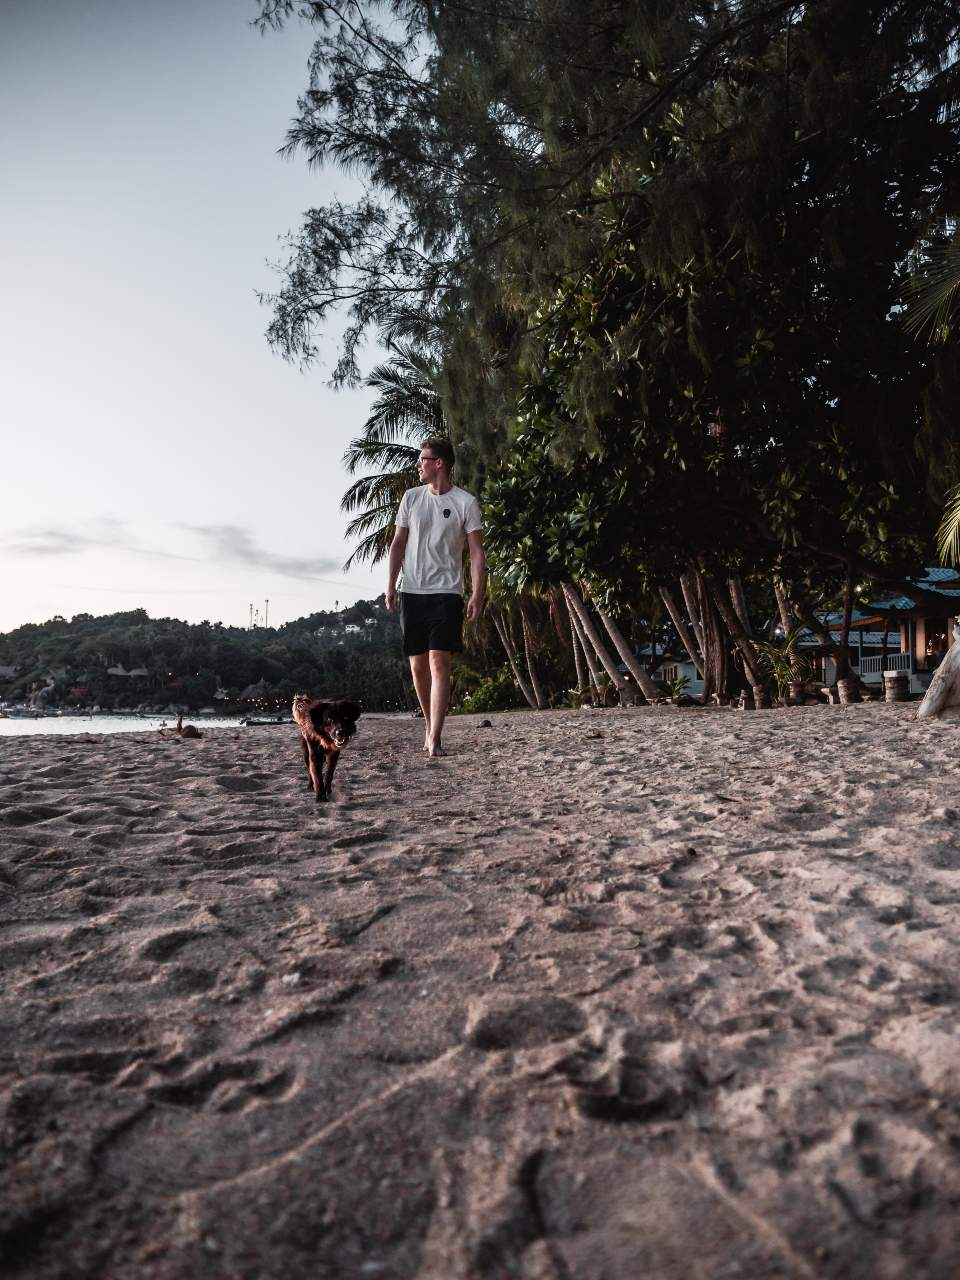 Beach on Koh Tao in Thailand with a nice dog